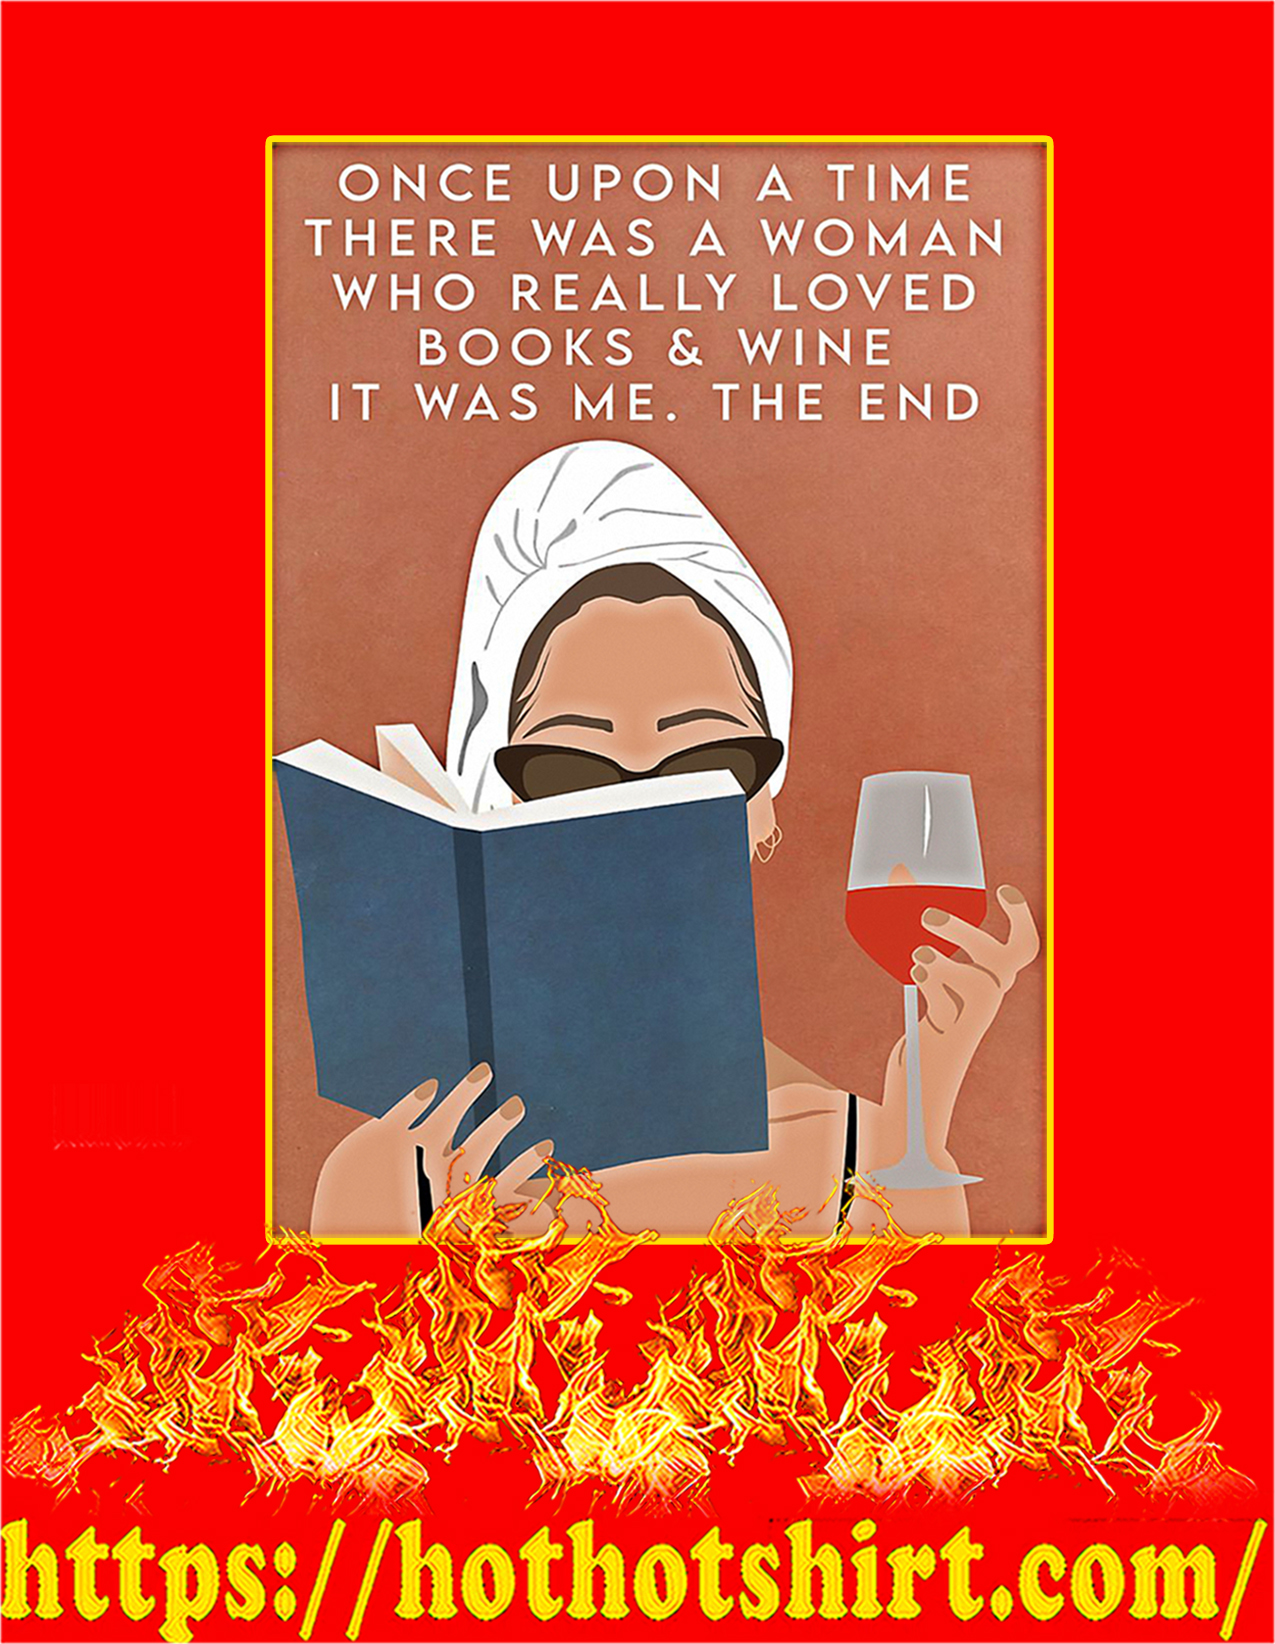 Once upon a time there was a woman who really loved books and wine poster - A2